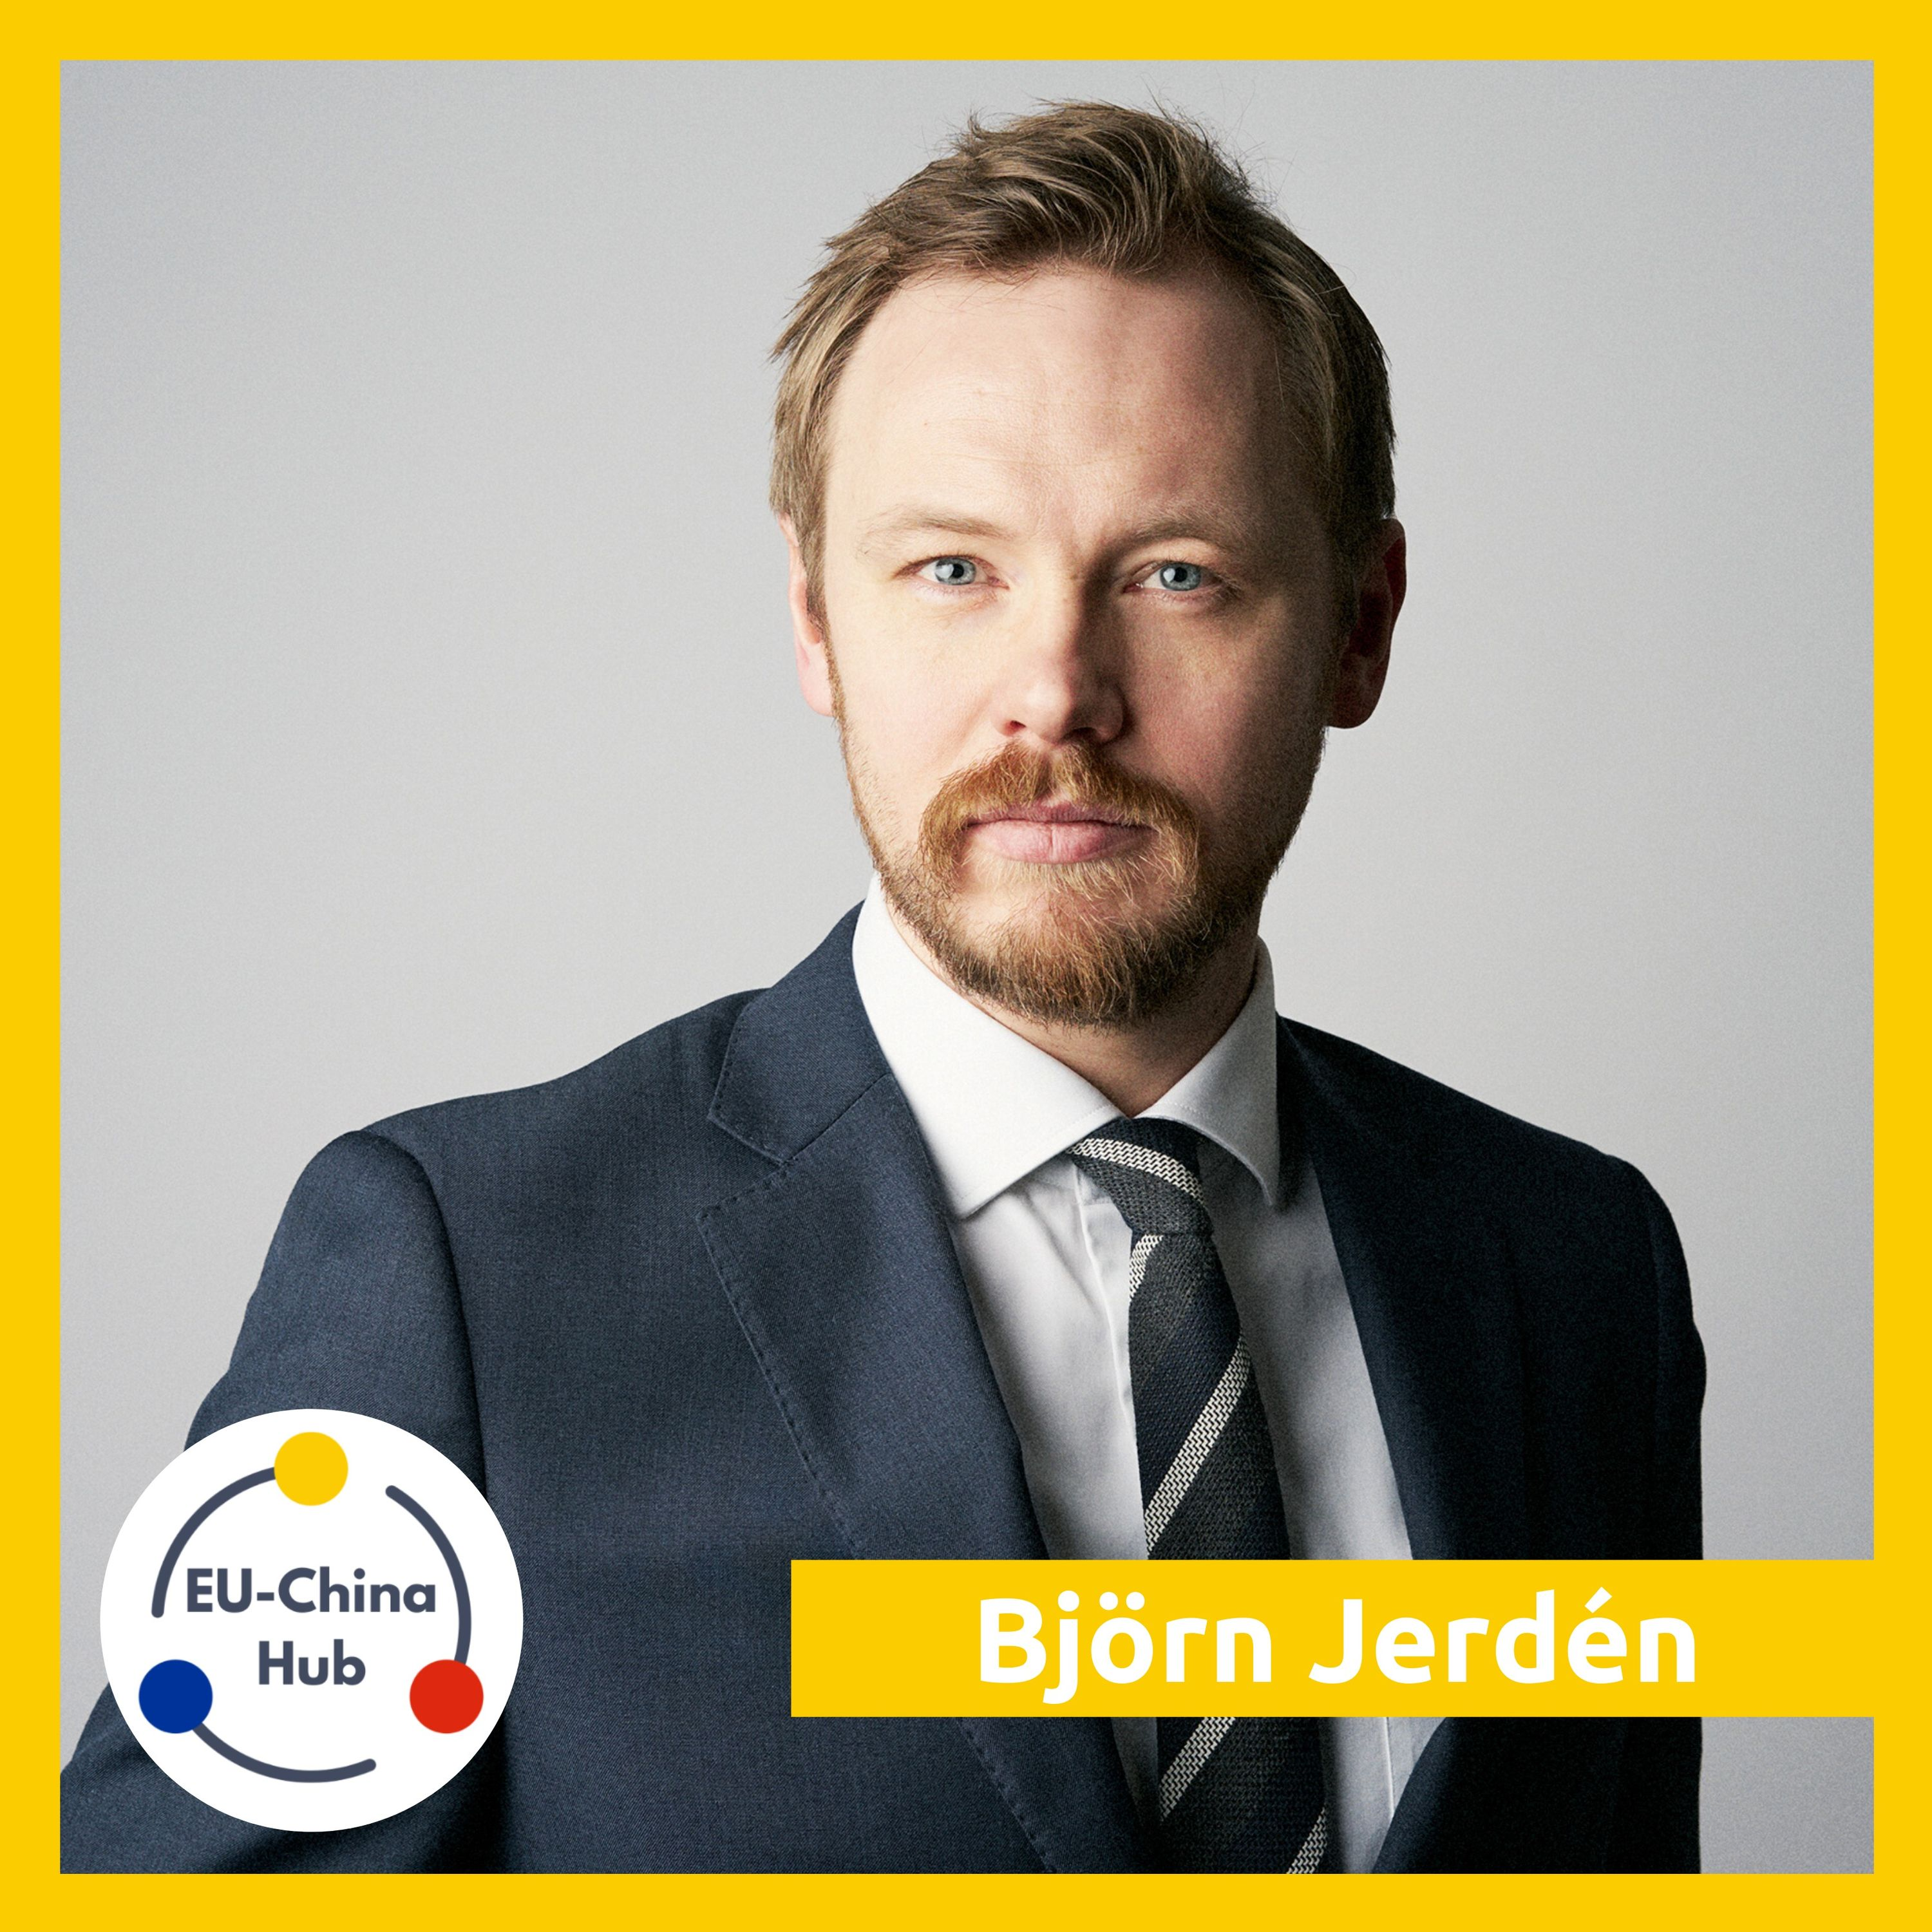 #14 BJÖRN JERDÉN: Sino-Swedish Relations - Standing Up for Values While Managing Interests